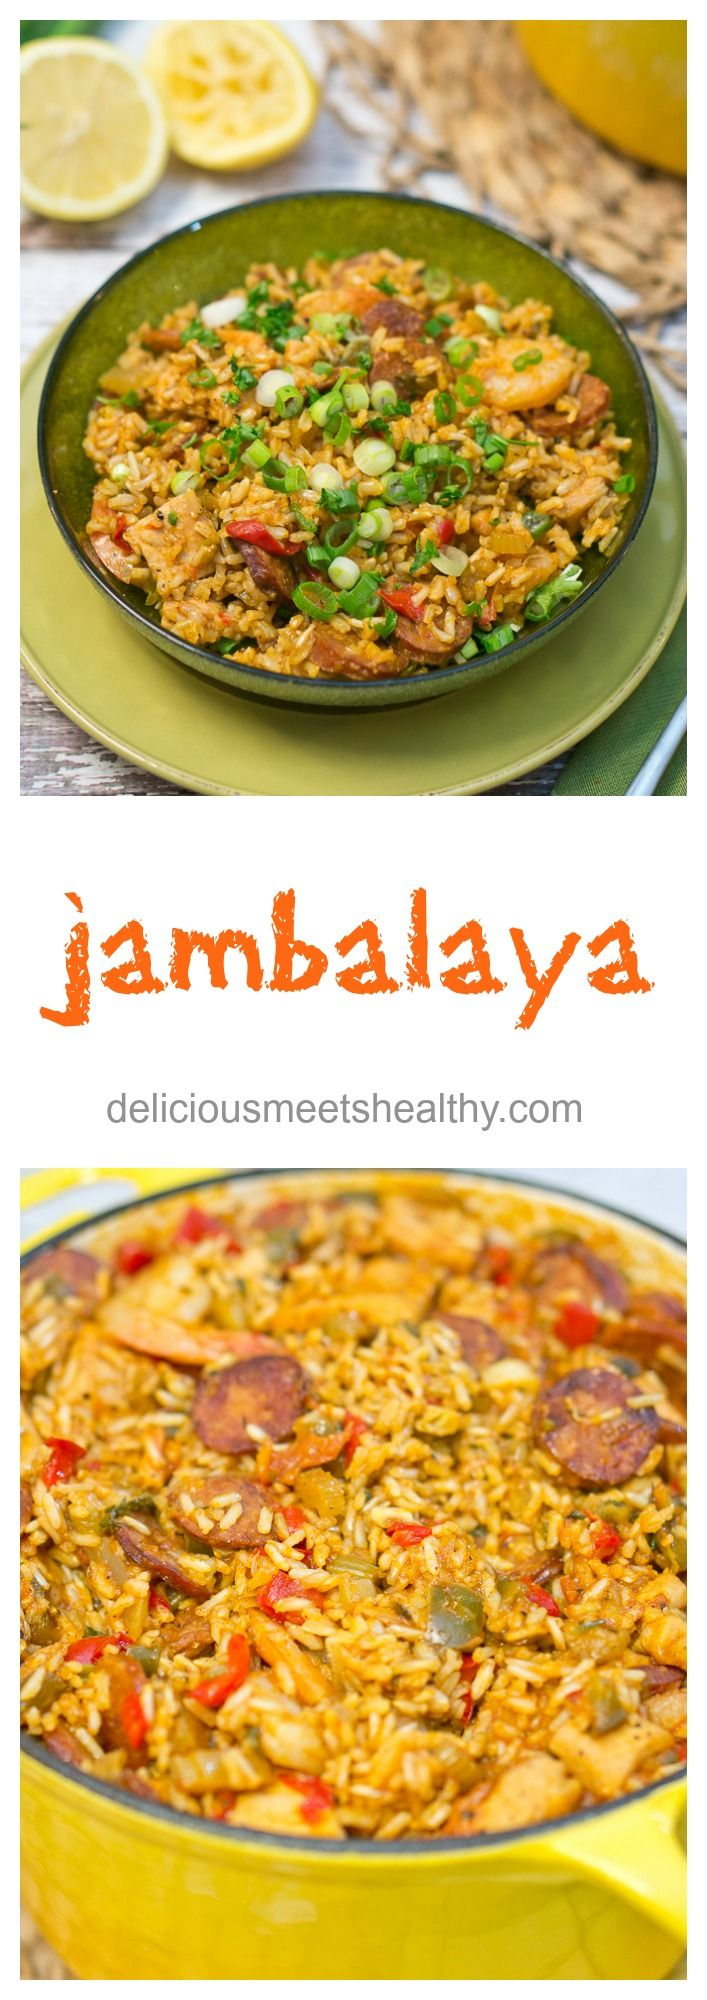 Jambalaya - yummy! This recipe is so flavorful and delicious!